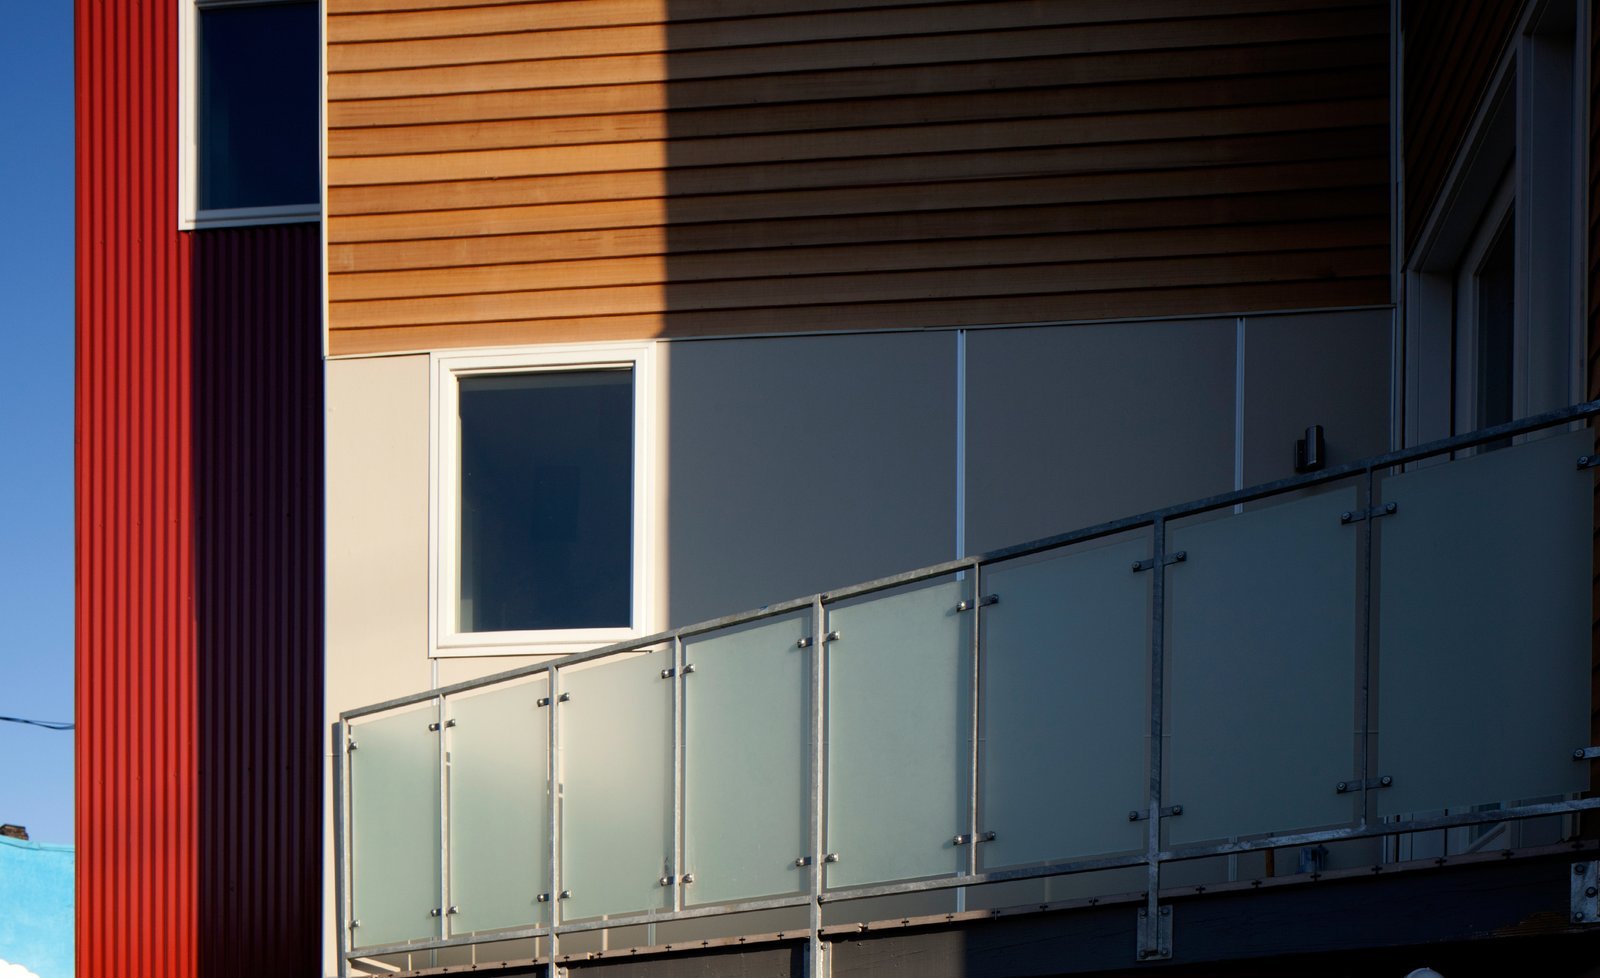 Croghan's Edge Townhomes  Croghan's Edge Townhomes by mossArchitects